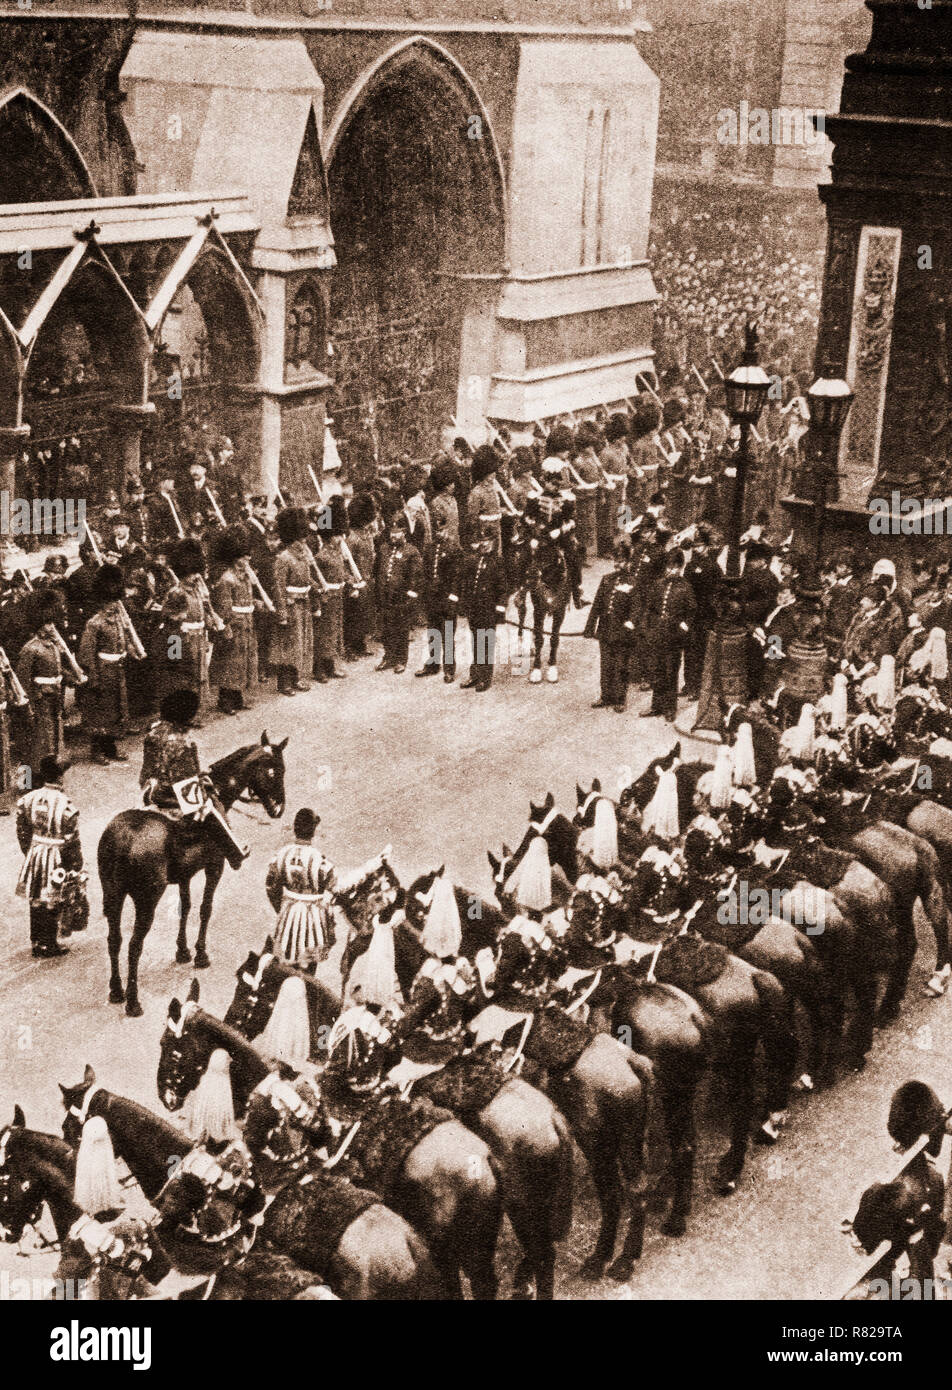 Temple Bar, London on May 9th, 1910, the day George V was proclaimed King. According to ancient customs the heralds must obtain the Lord Mayors permission before they can enter the City of London. It appears the the mayor is sovereign in the city and can forbid anyone (including the king) from entering. - Stock Image